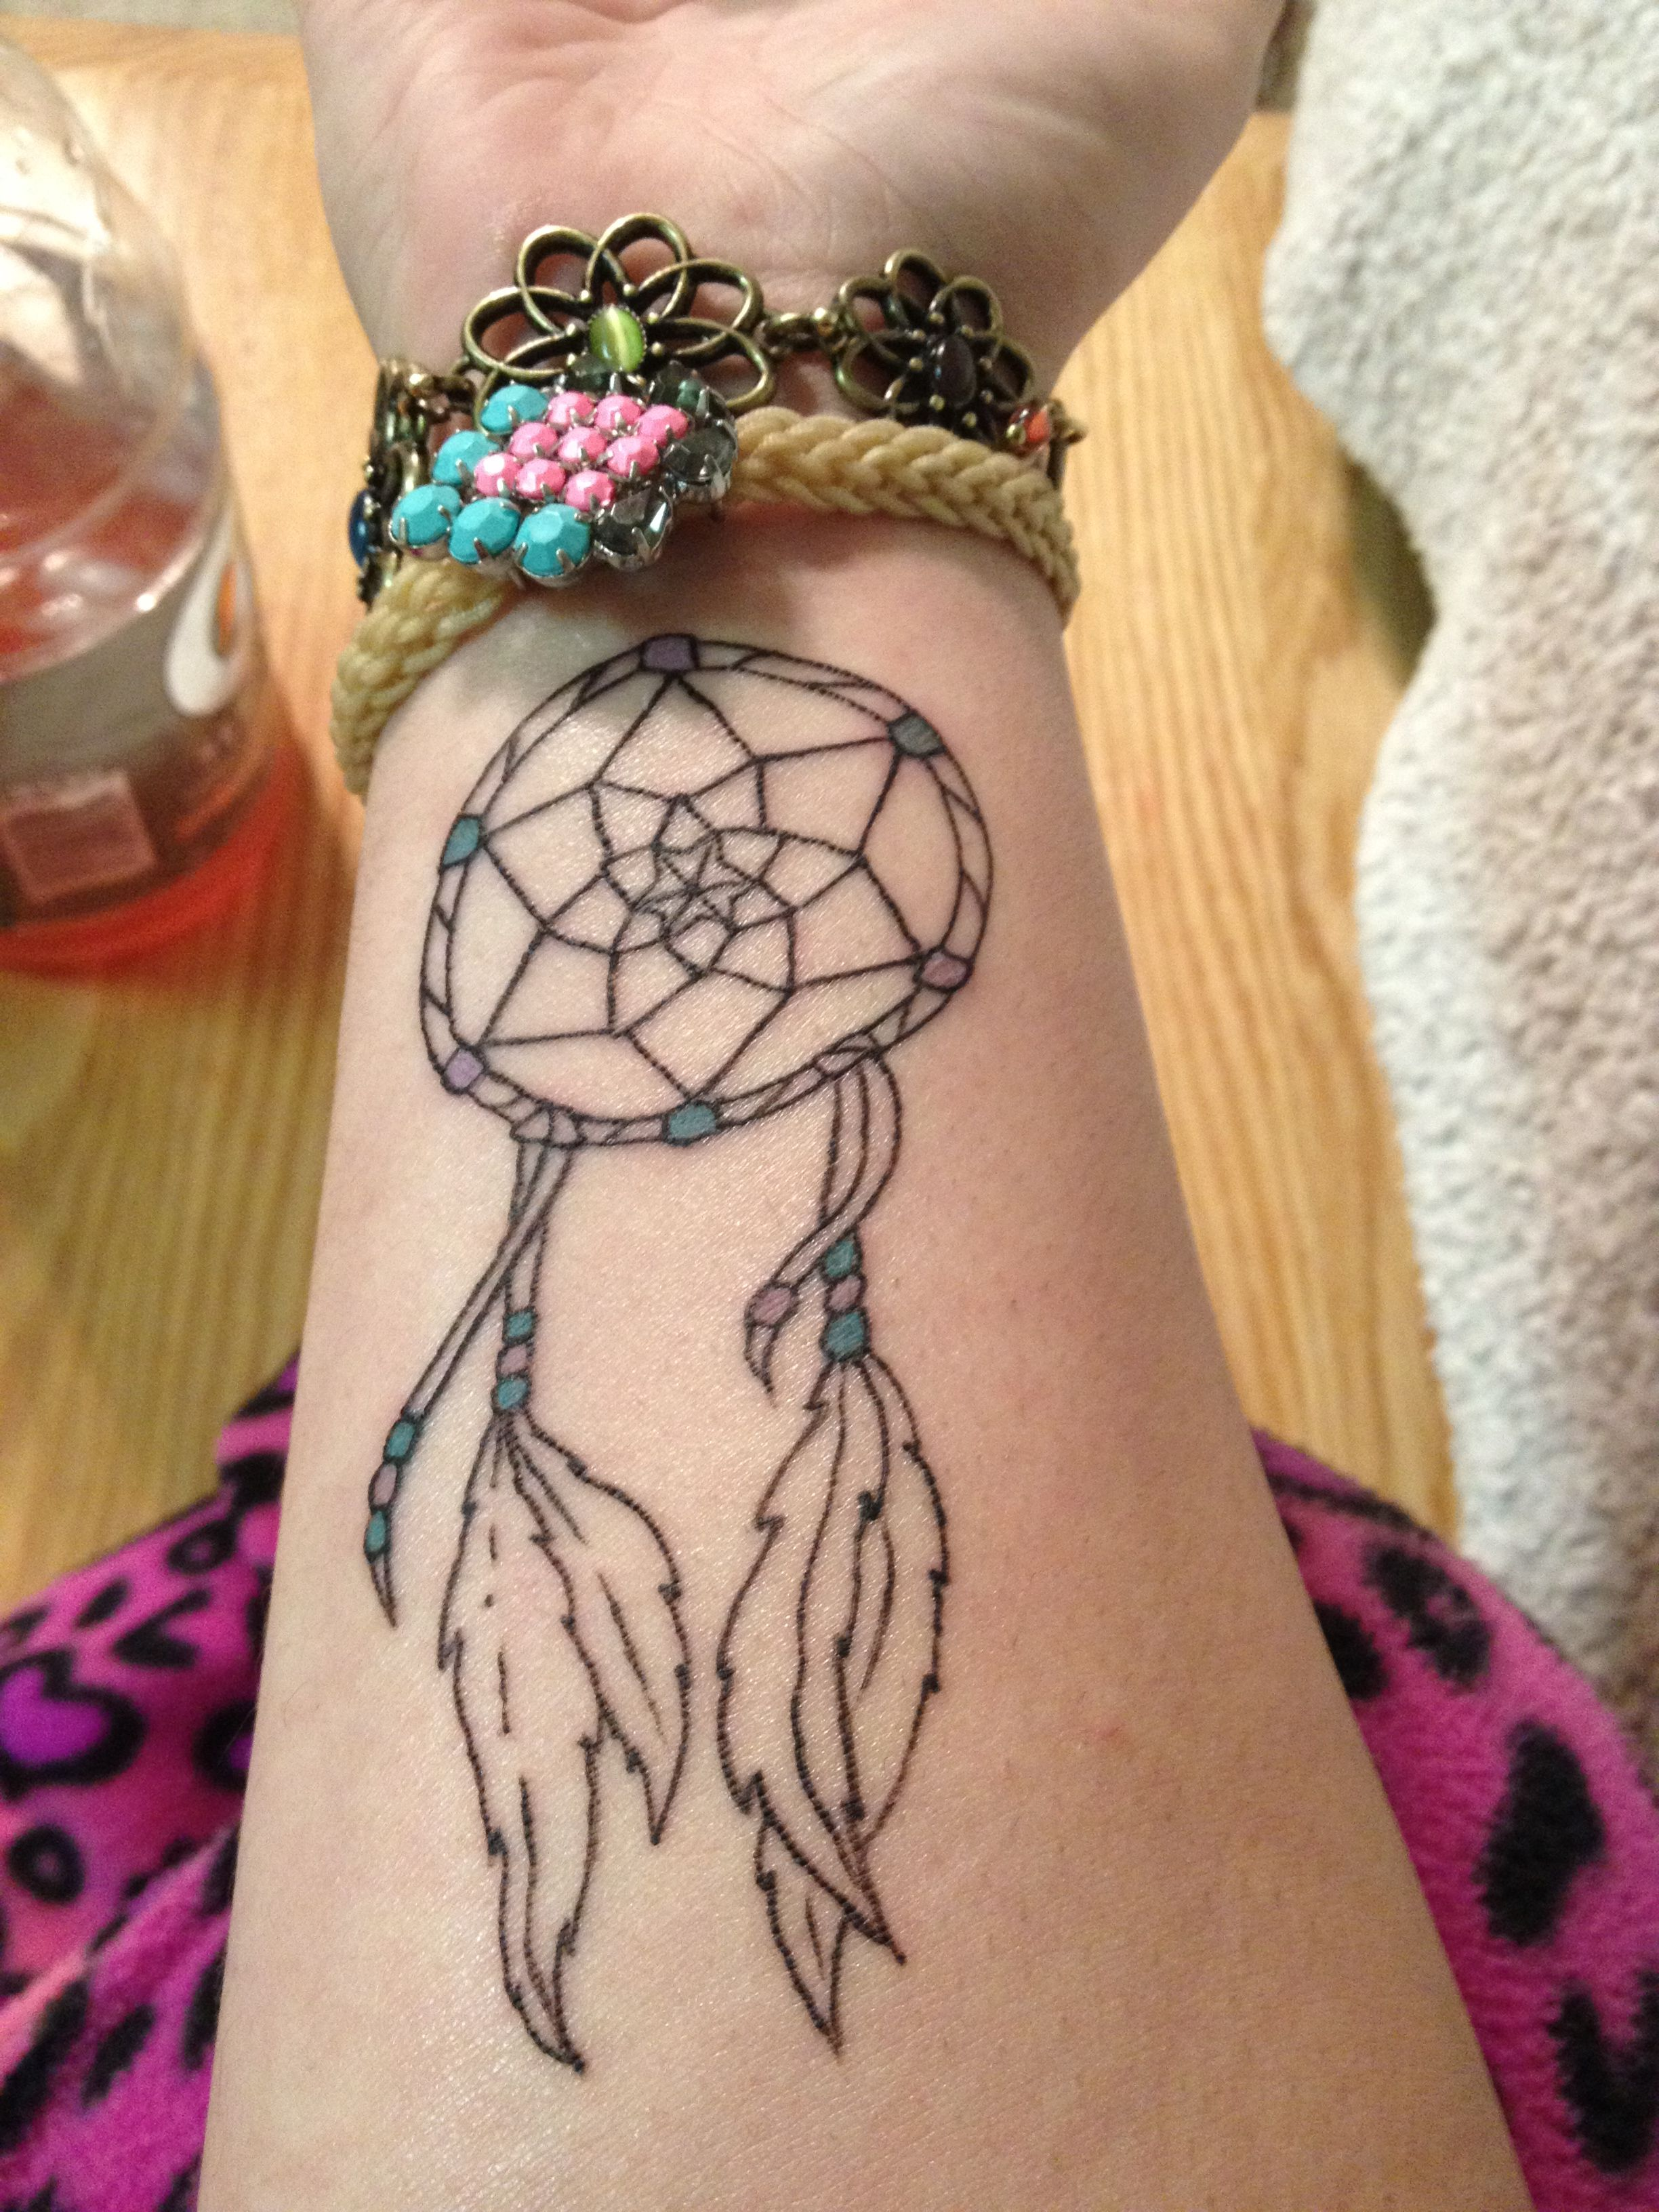 My new tattoo, I love dreamcatchers and my arm <3